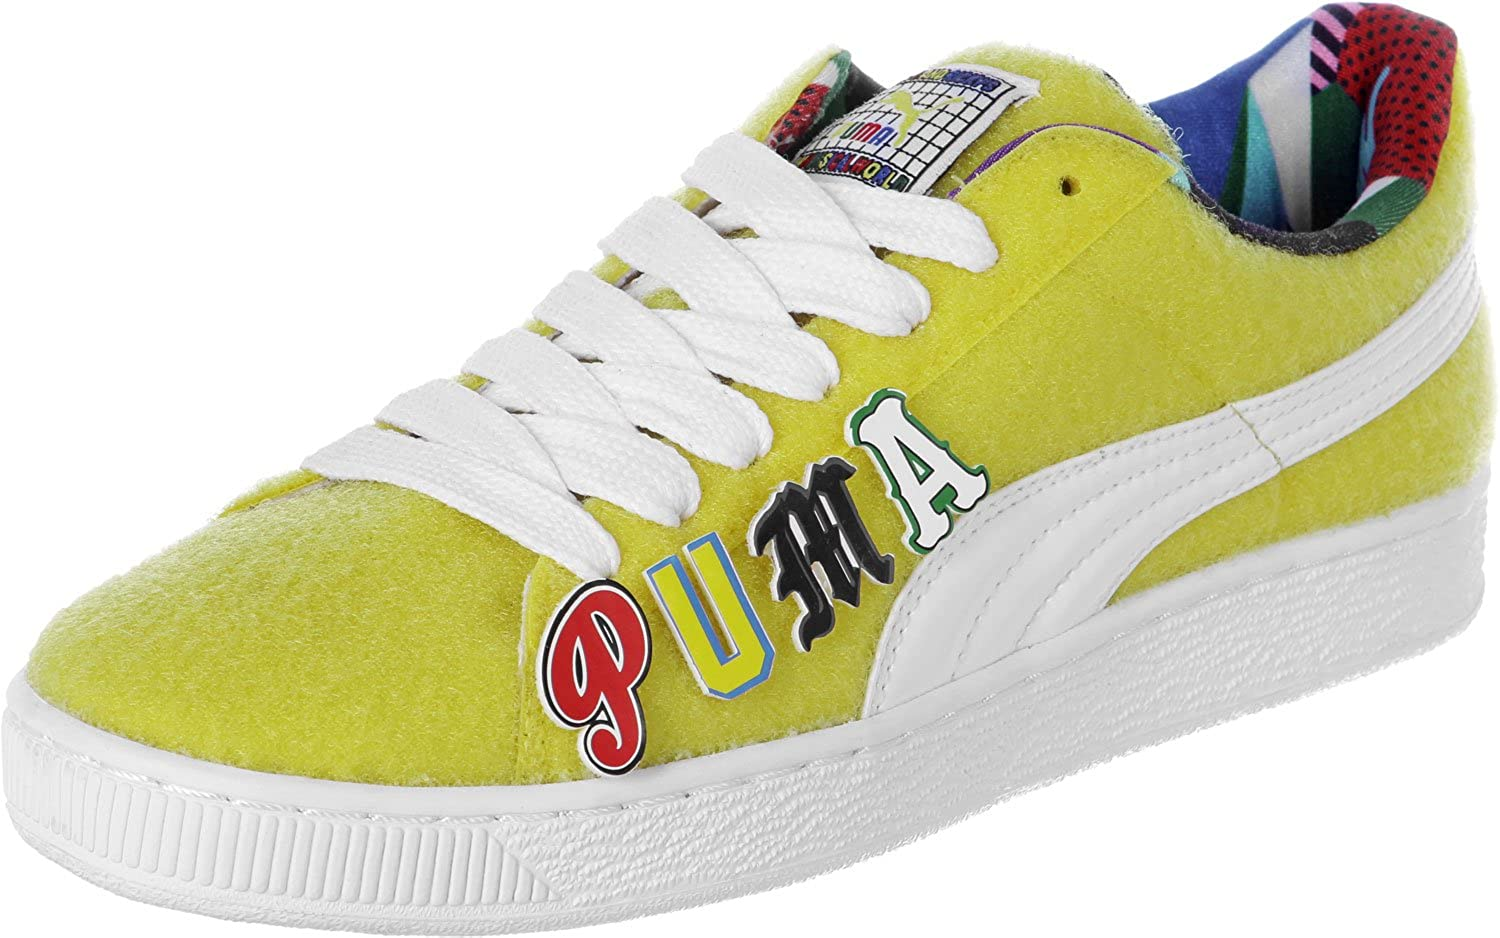 PUMA Comhommeder X Dee & Ricky CR Hommes paniers Jaune 360 084 01, Taille 45